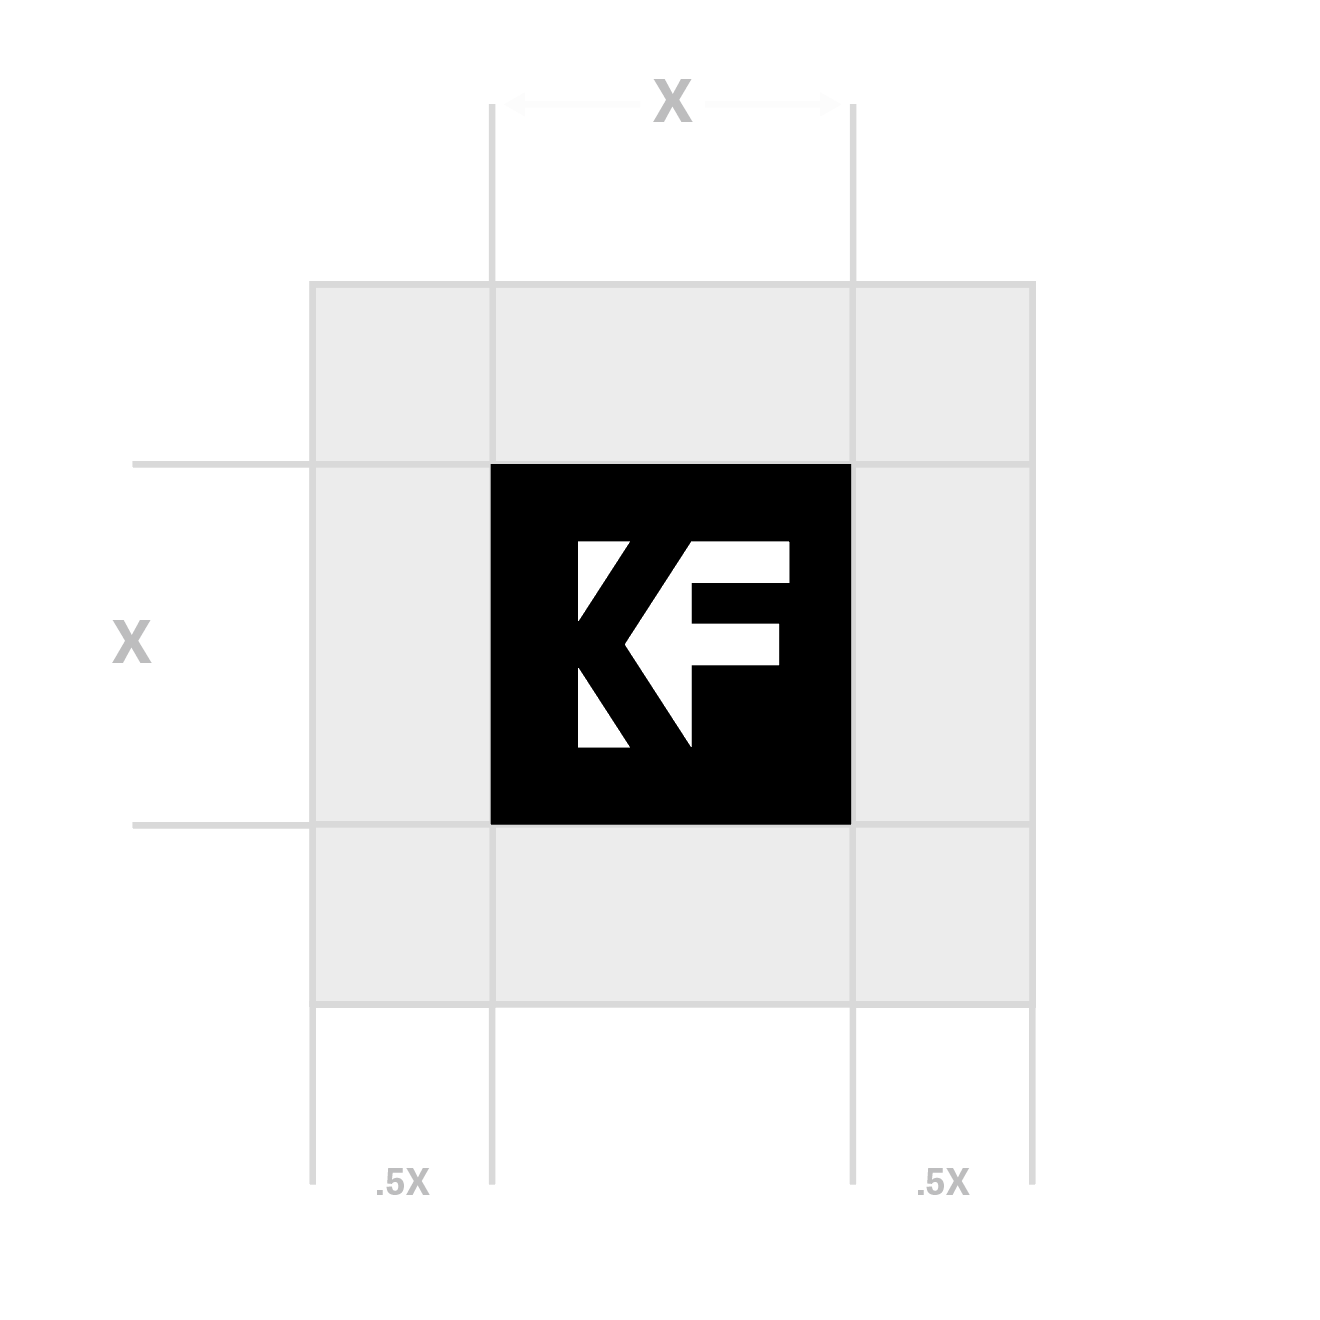 <p>Square logo spacing guidelines.</p>